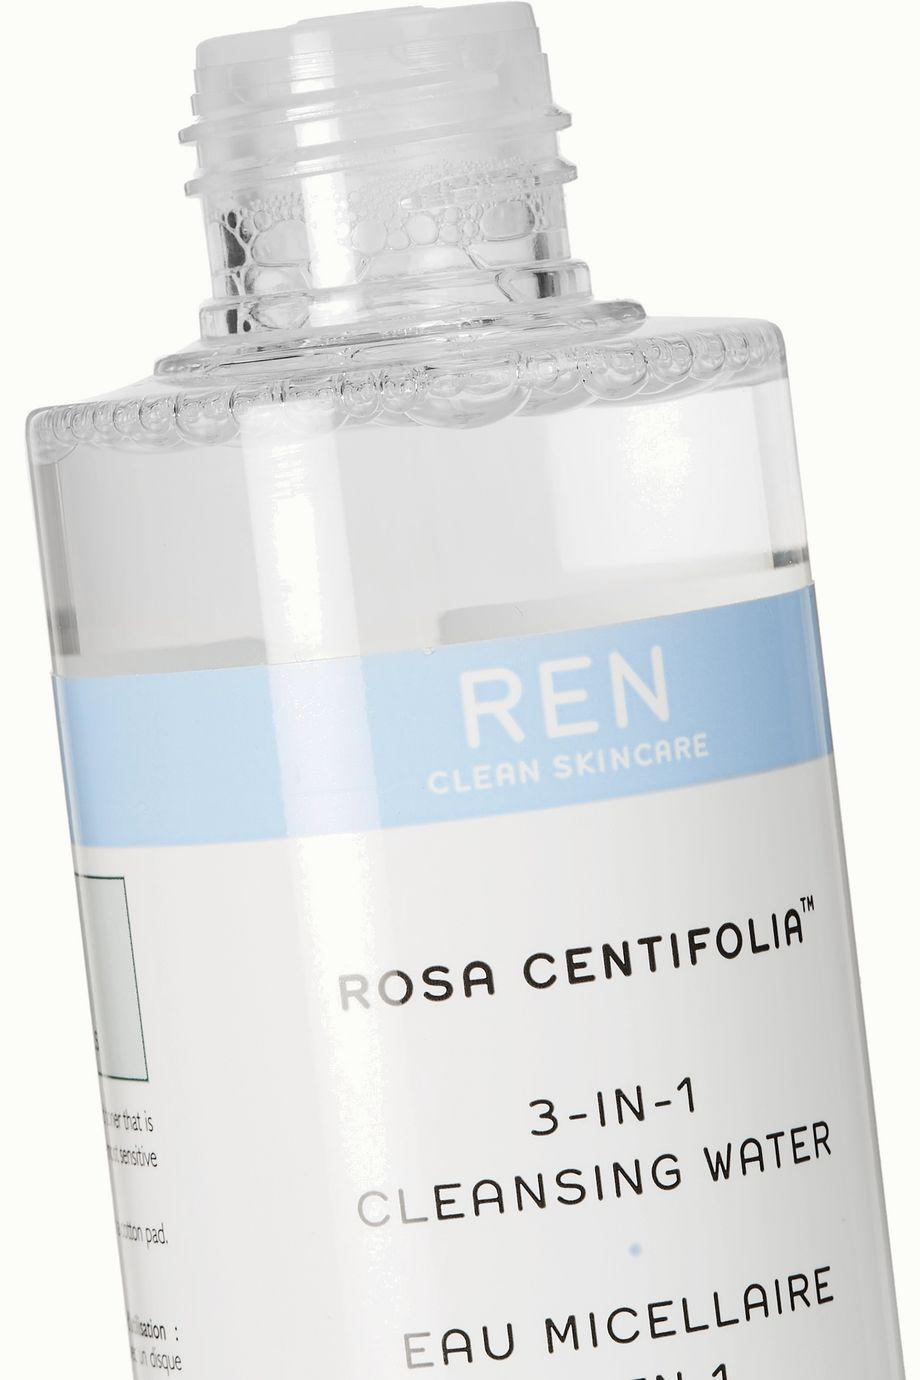 REN Clean Skincare Rosa Centifolia 3-in-1 Cleansing Water, 200ml